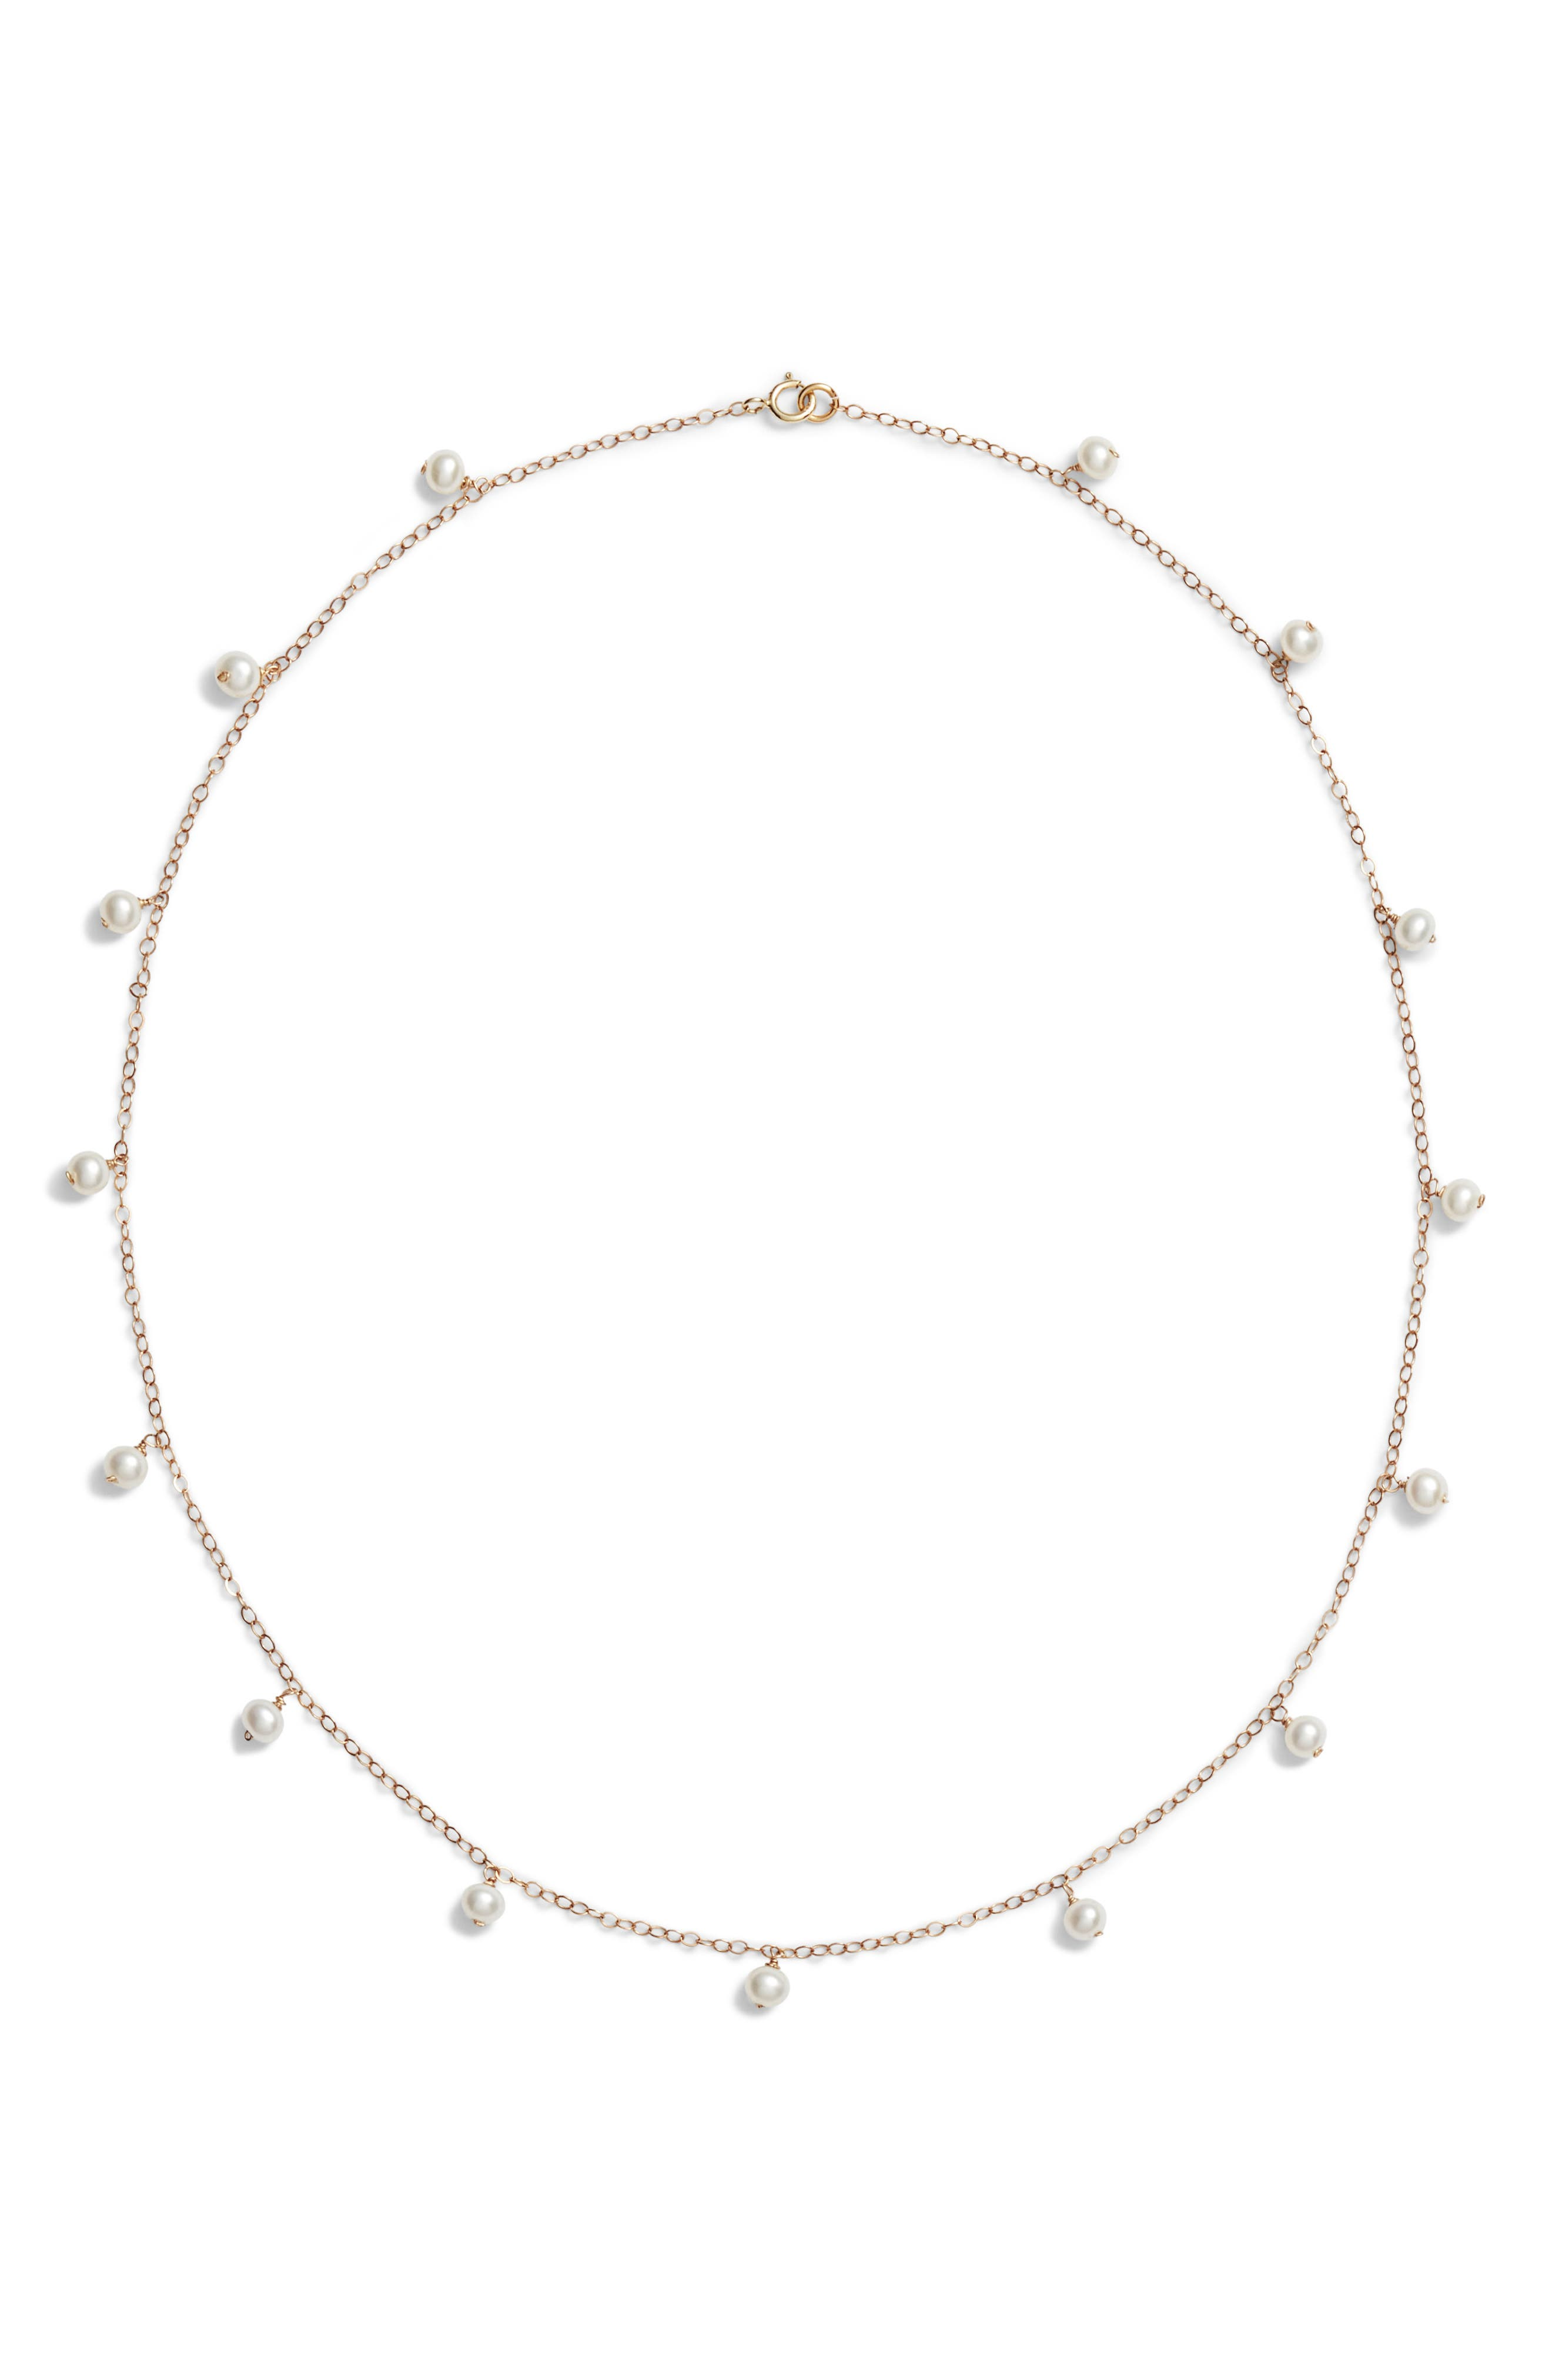 Baby Pearl Station Short Necklace,                         Main,                         color, Yellow Gold/ White Pearl